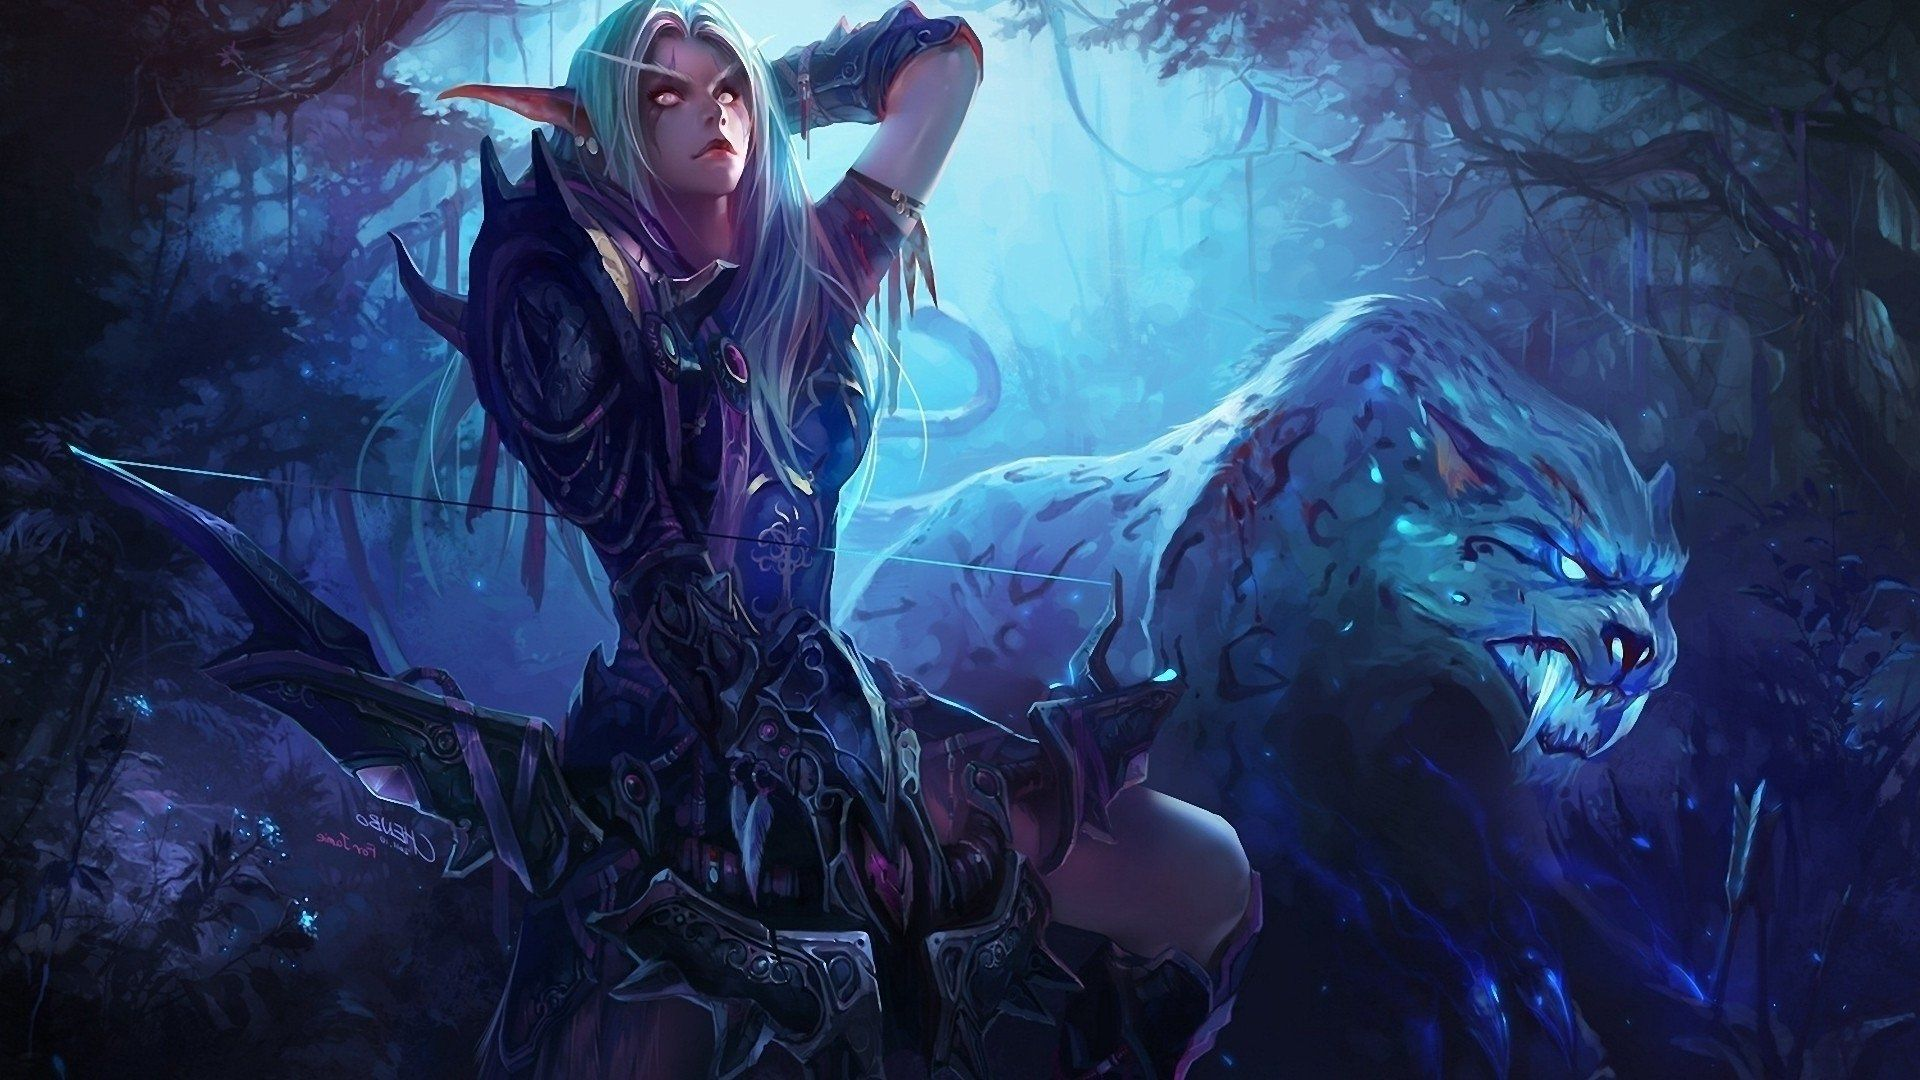 1920x1080 World Of Warcraft Best Photos For Wallpaper World Of Warcraft Wallpaper Warcraft Art World Of Warcraft